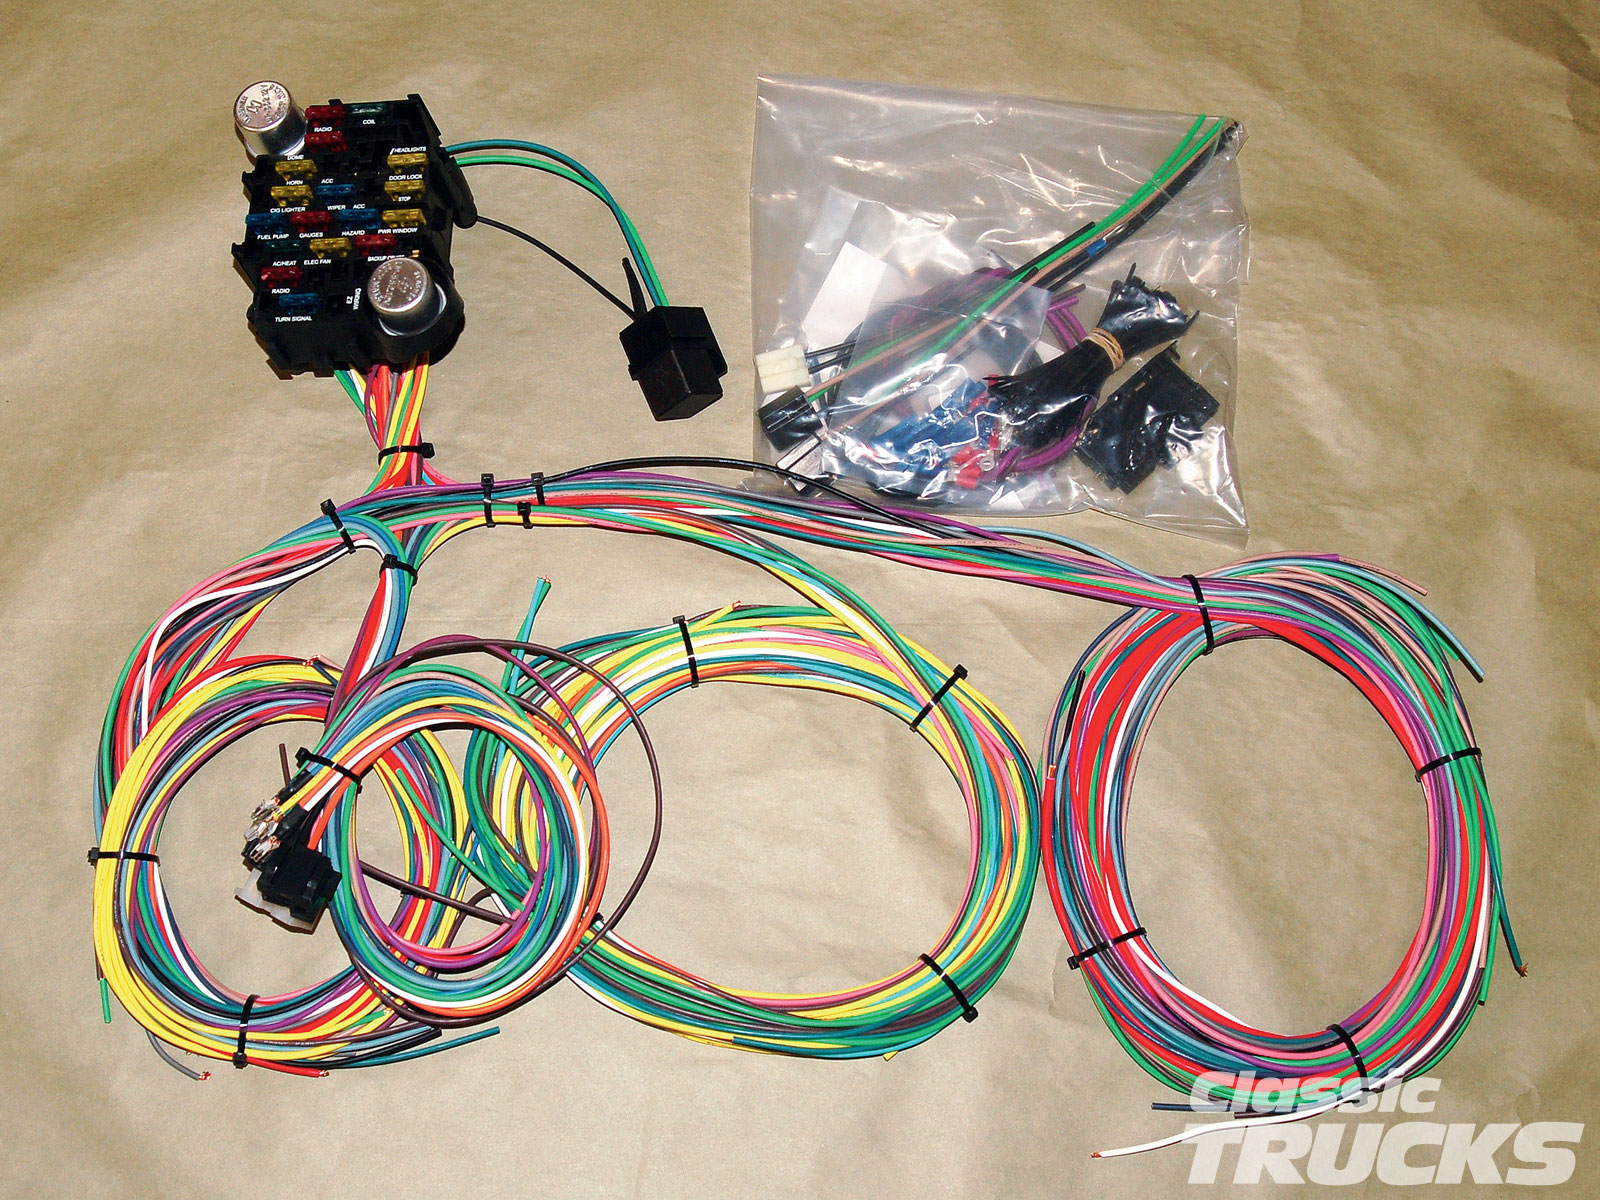 1010clt 02 o aftermarket wiring harness install kit?resize=640%2C480 how much does a wire harness cost to replace hobbiesxstyle how much does it cost to replace a wiring harness at reclaimingppi.co